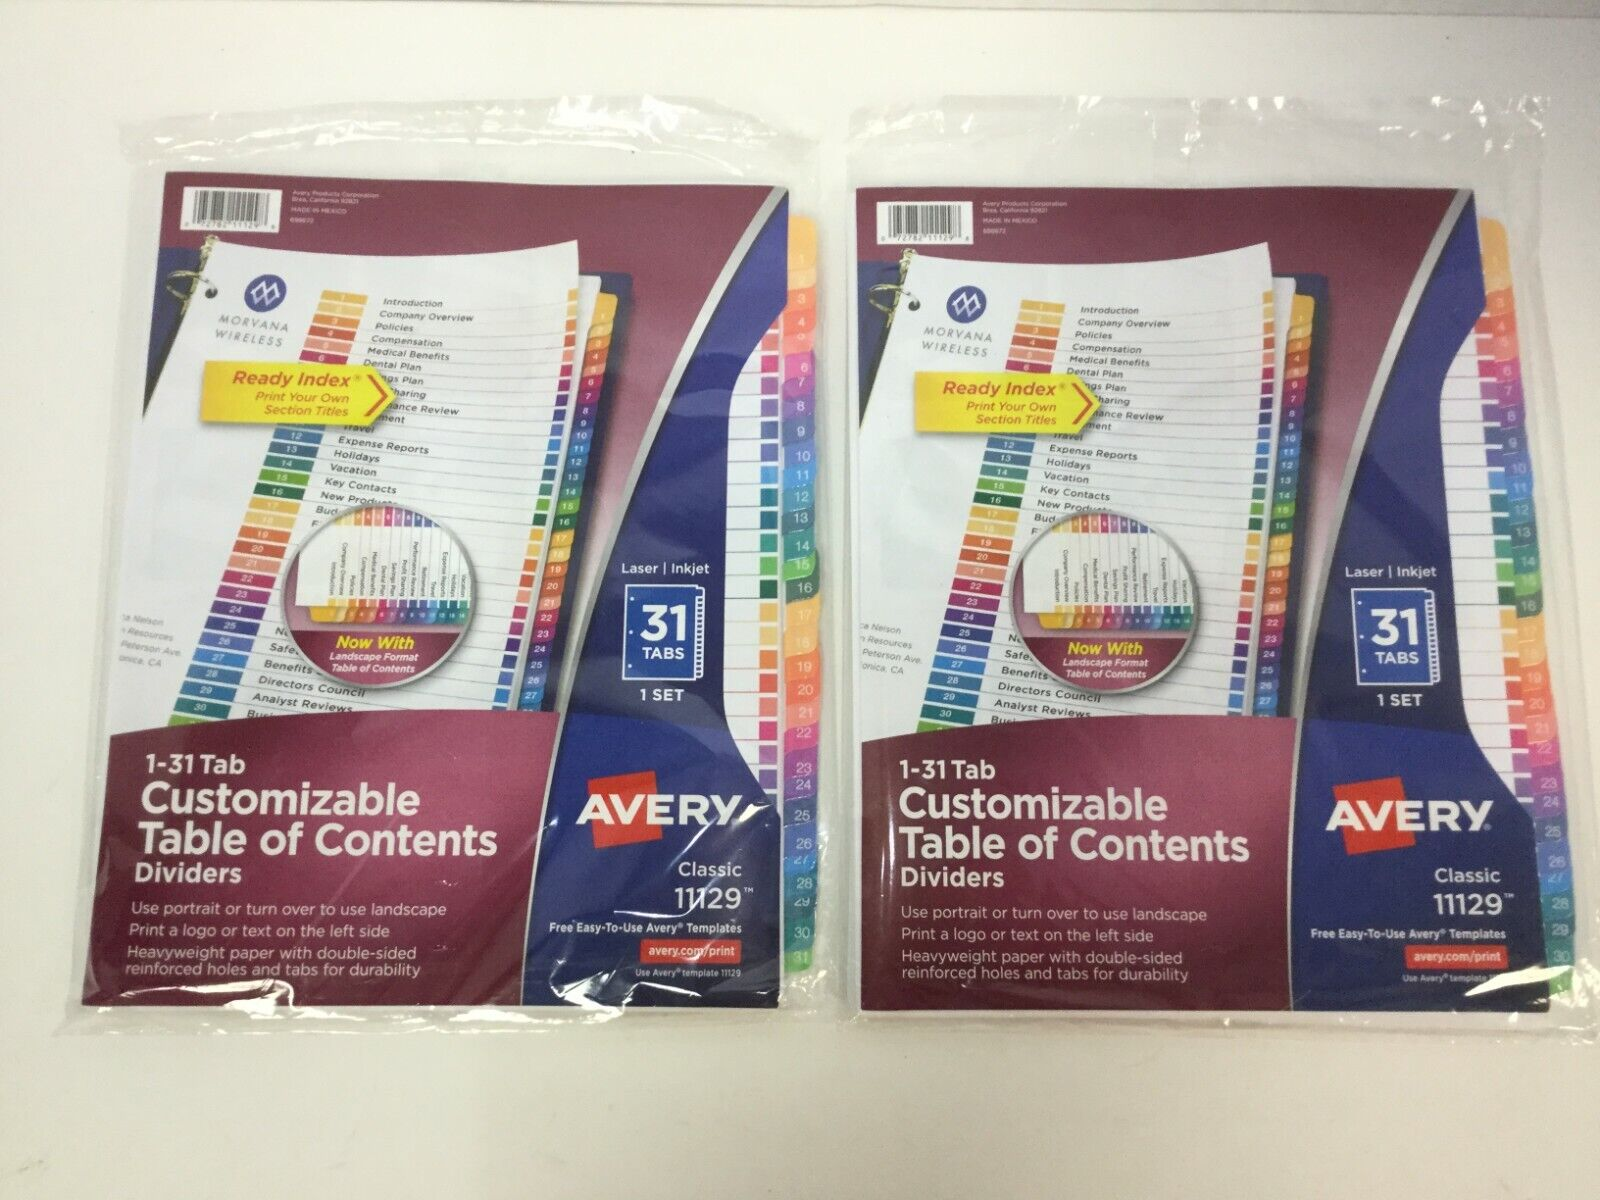 consumer ave11129 ready index dividers